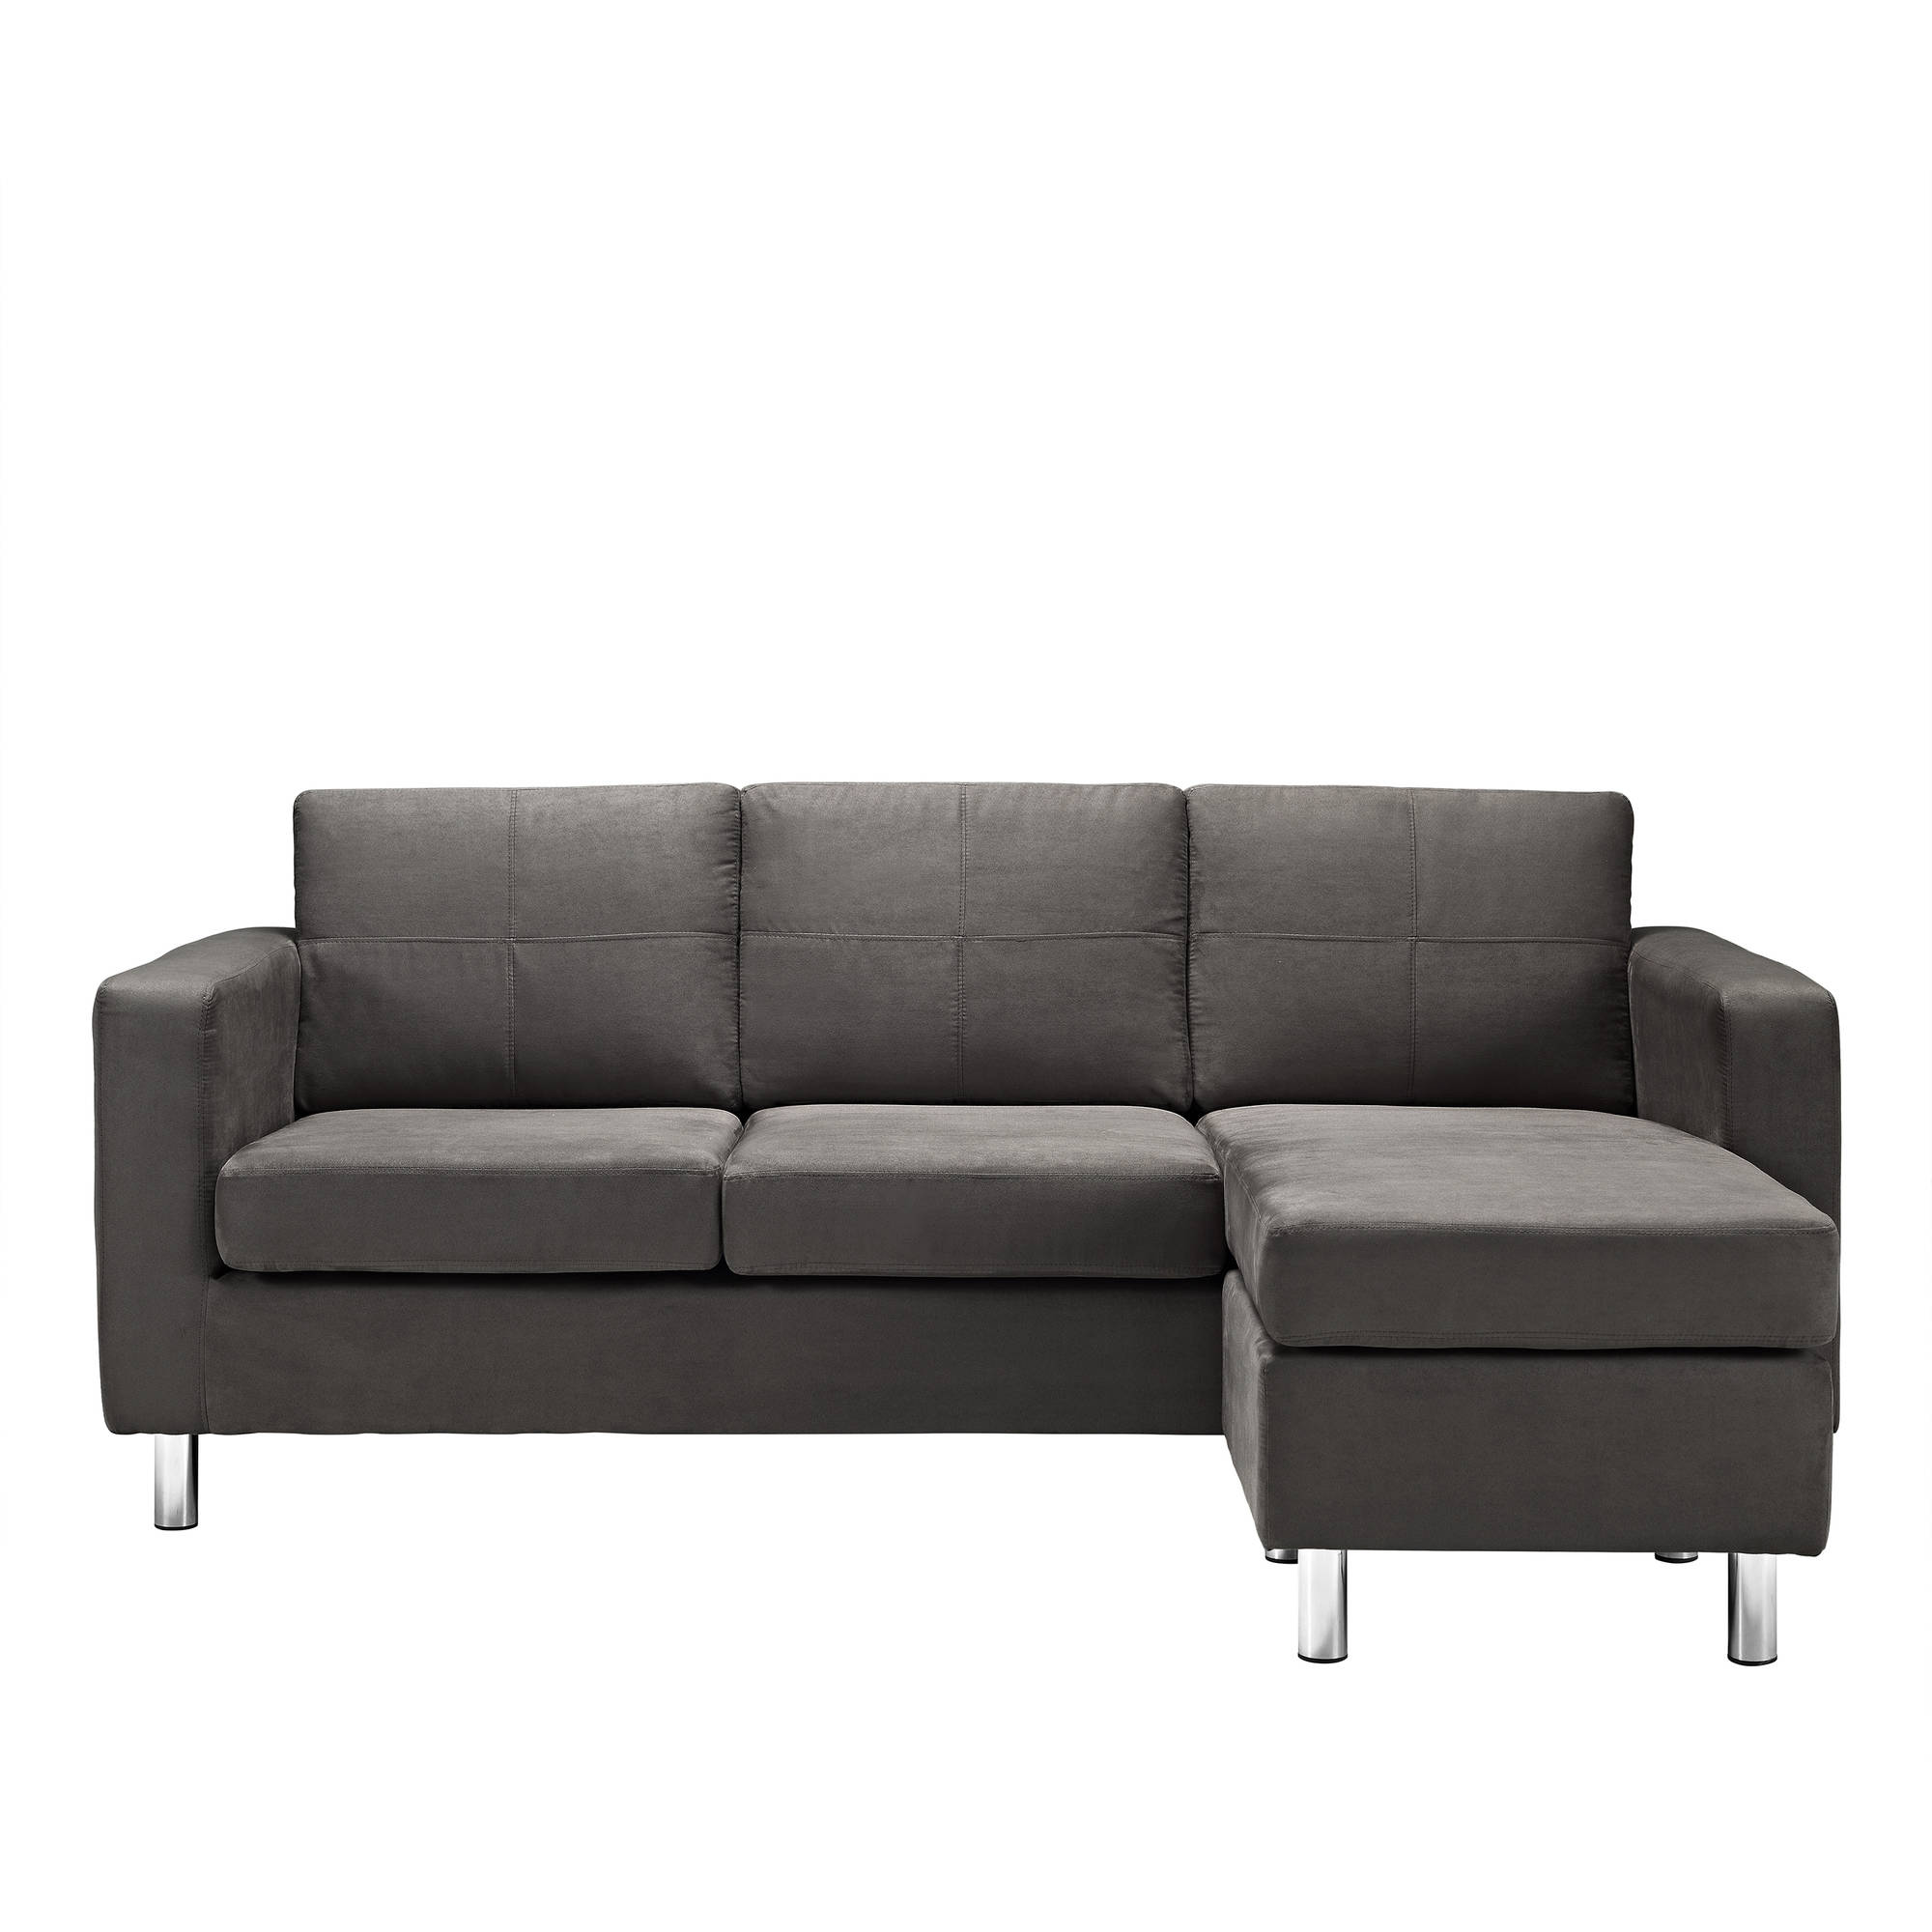 dorel living small spaces configurable sectional sofa multiple colors ebay. Black Bedroom Furniture Sets. Home Design Ideas